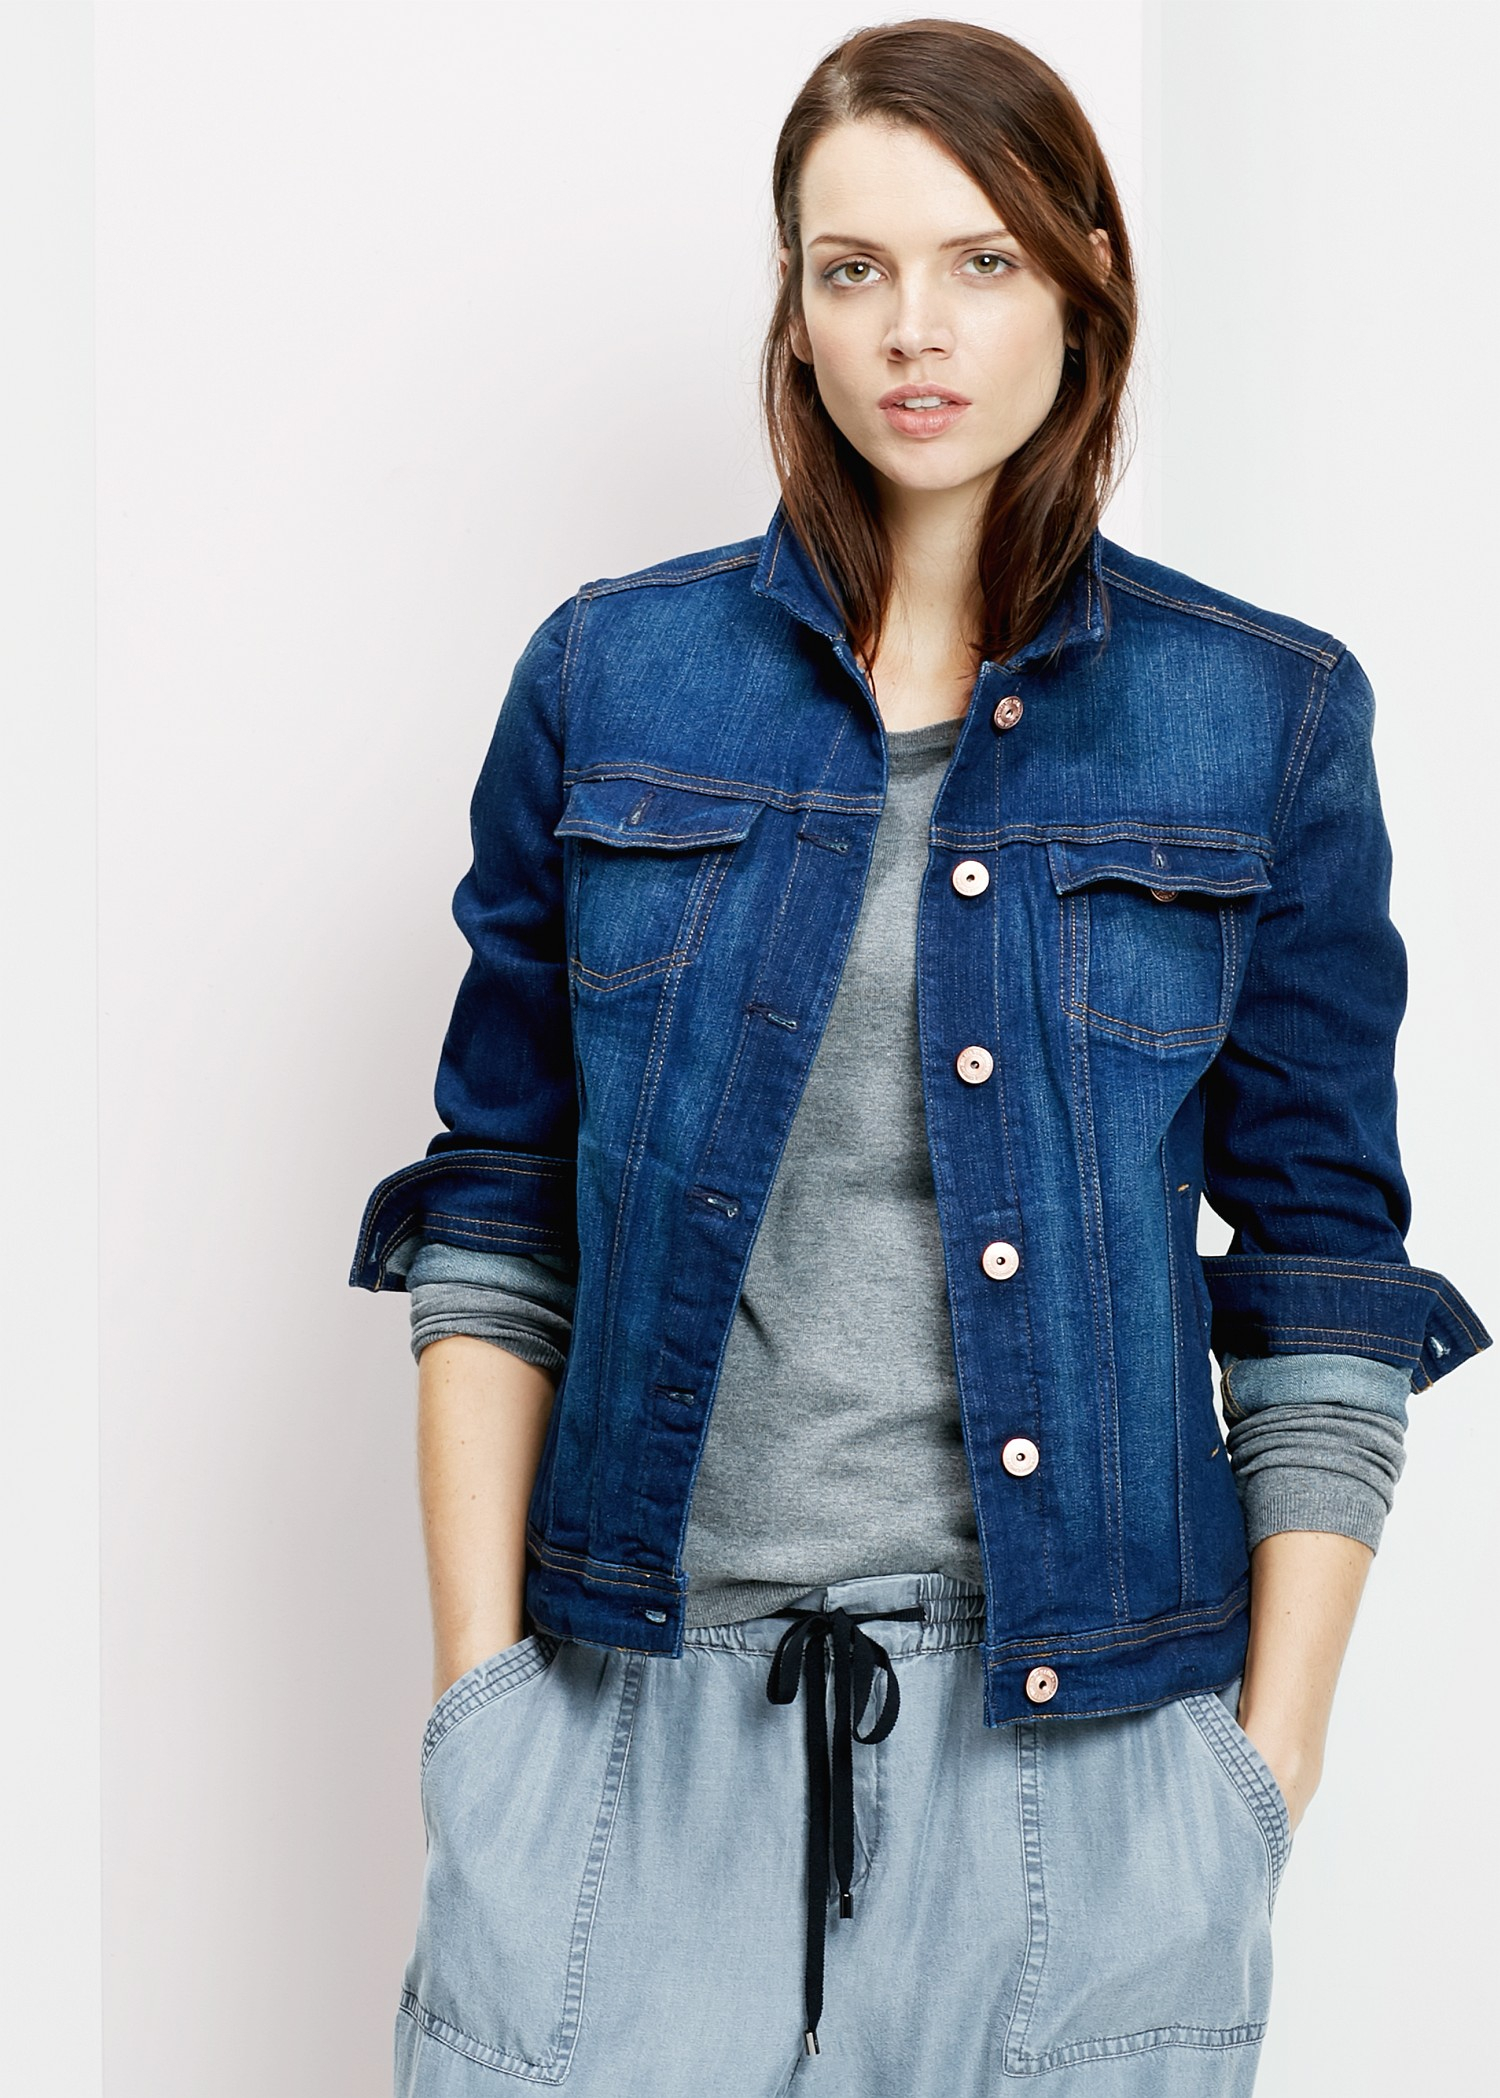 Violeta by mango Dark Denim Jacket in Blue | Lyst